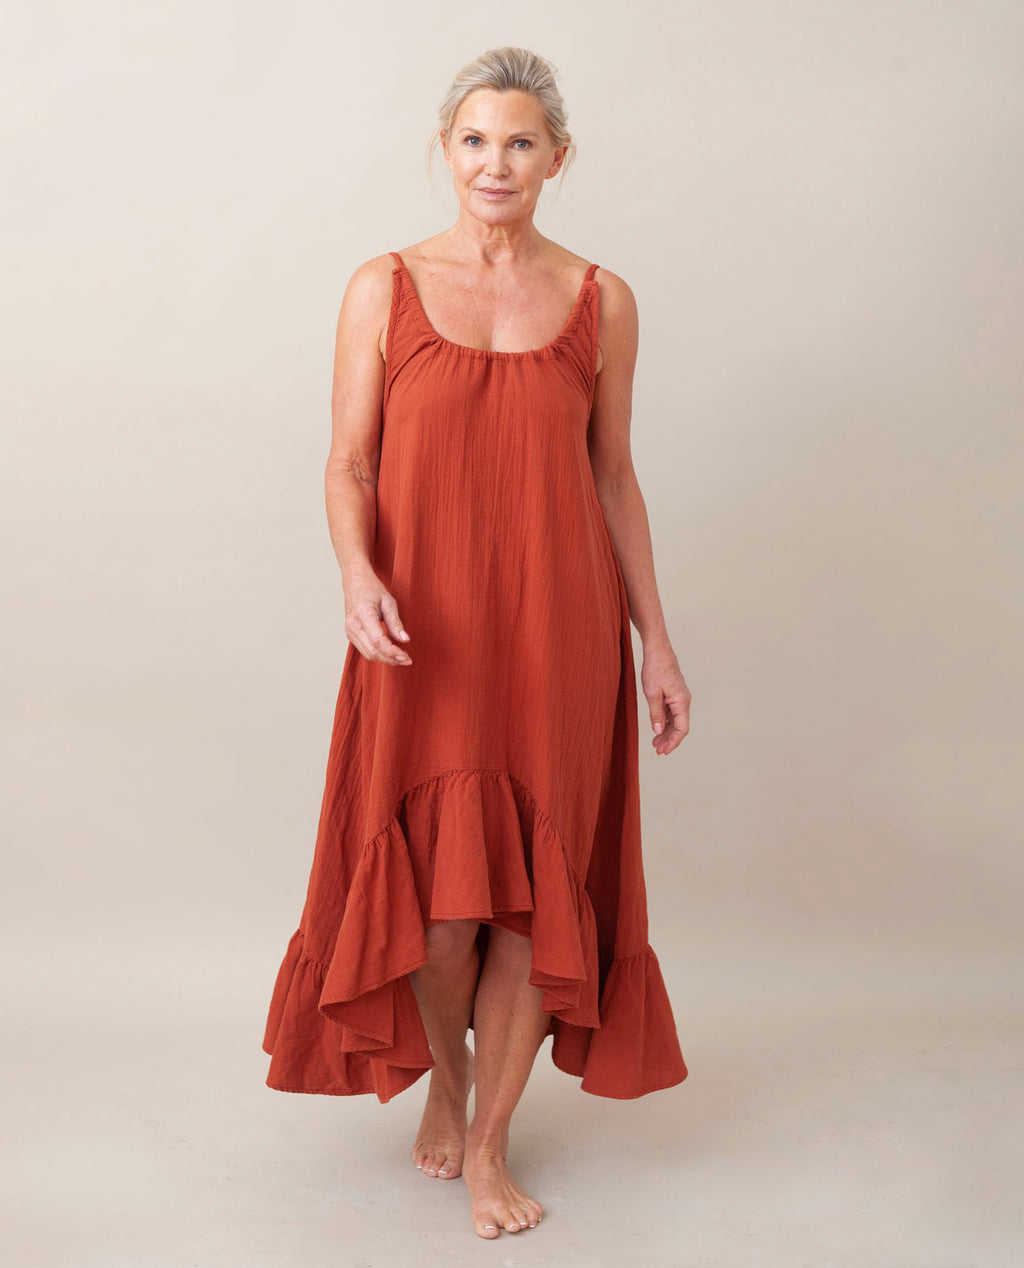 BELMIRA Organic Cotton Nightie In Cinnamon